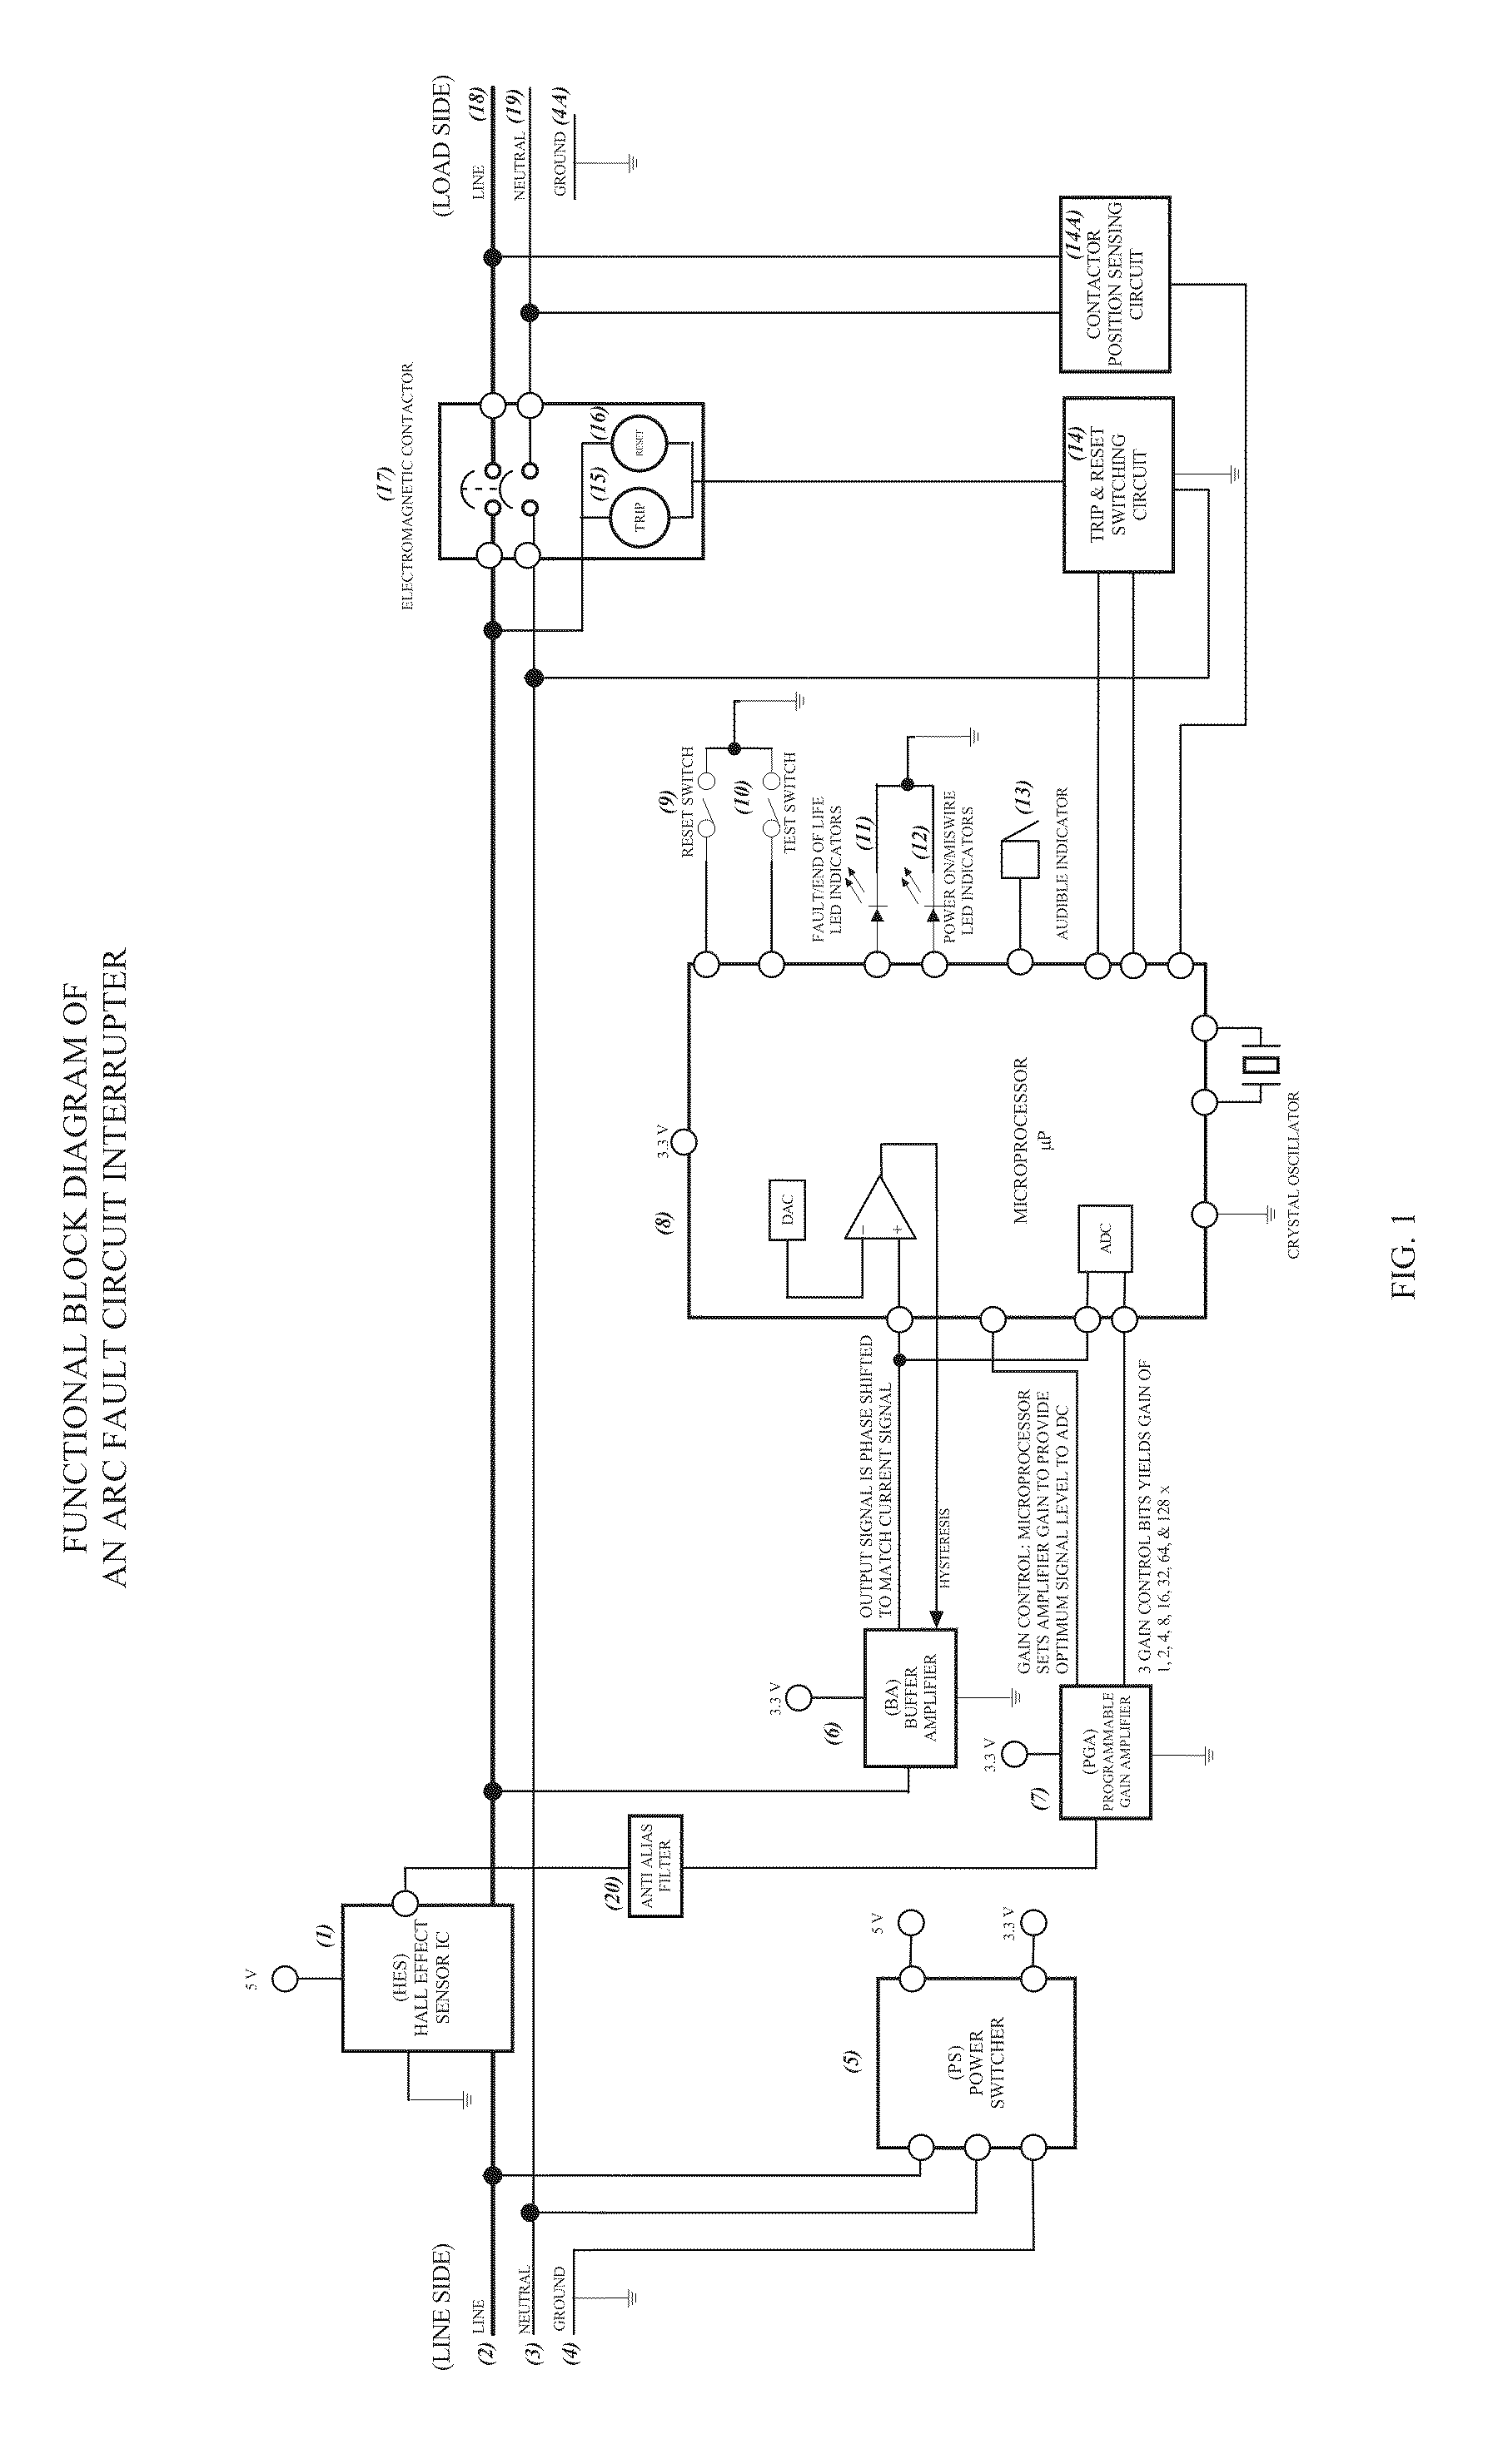 Patent Us20100097733 Arc Fault Circuit Interrupter Systems Or Afci Fundamentals Drawing